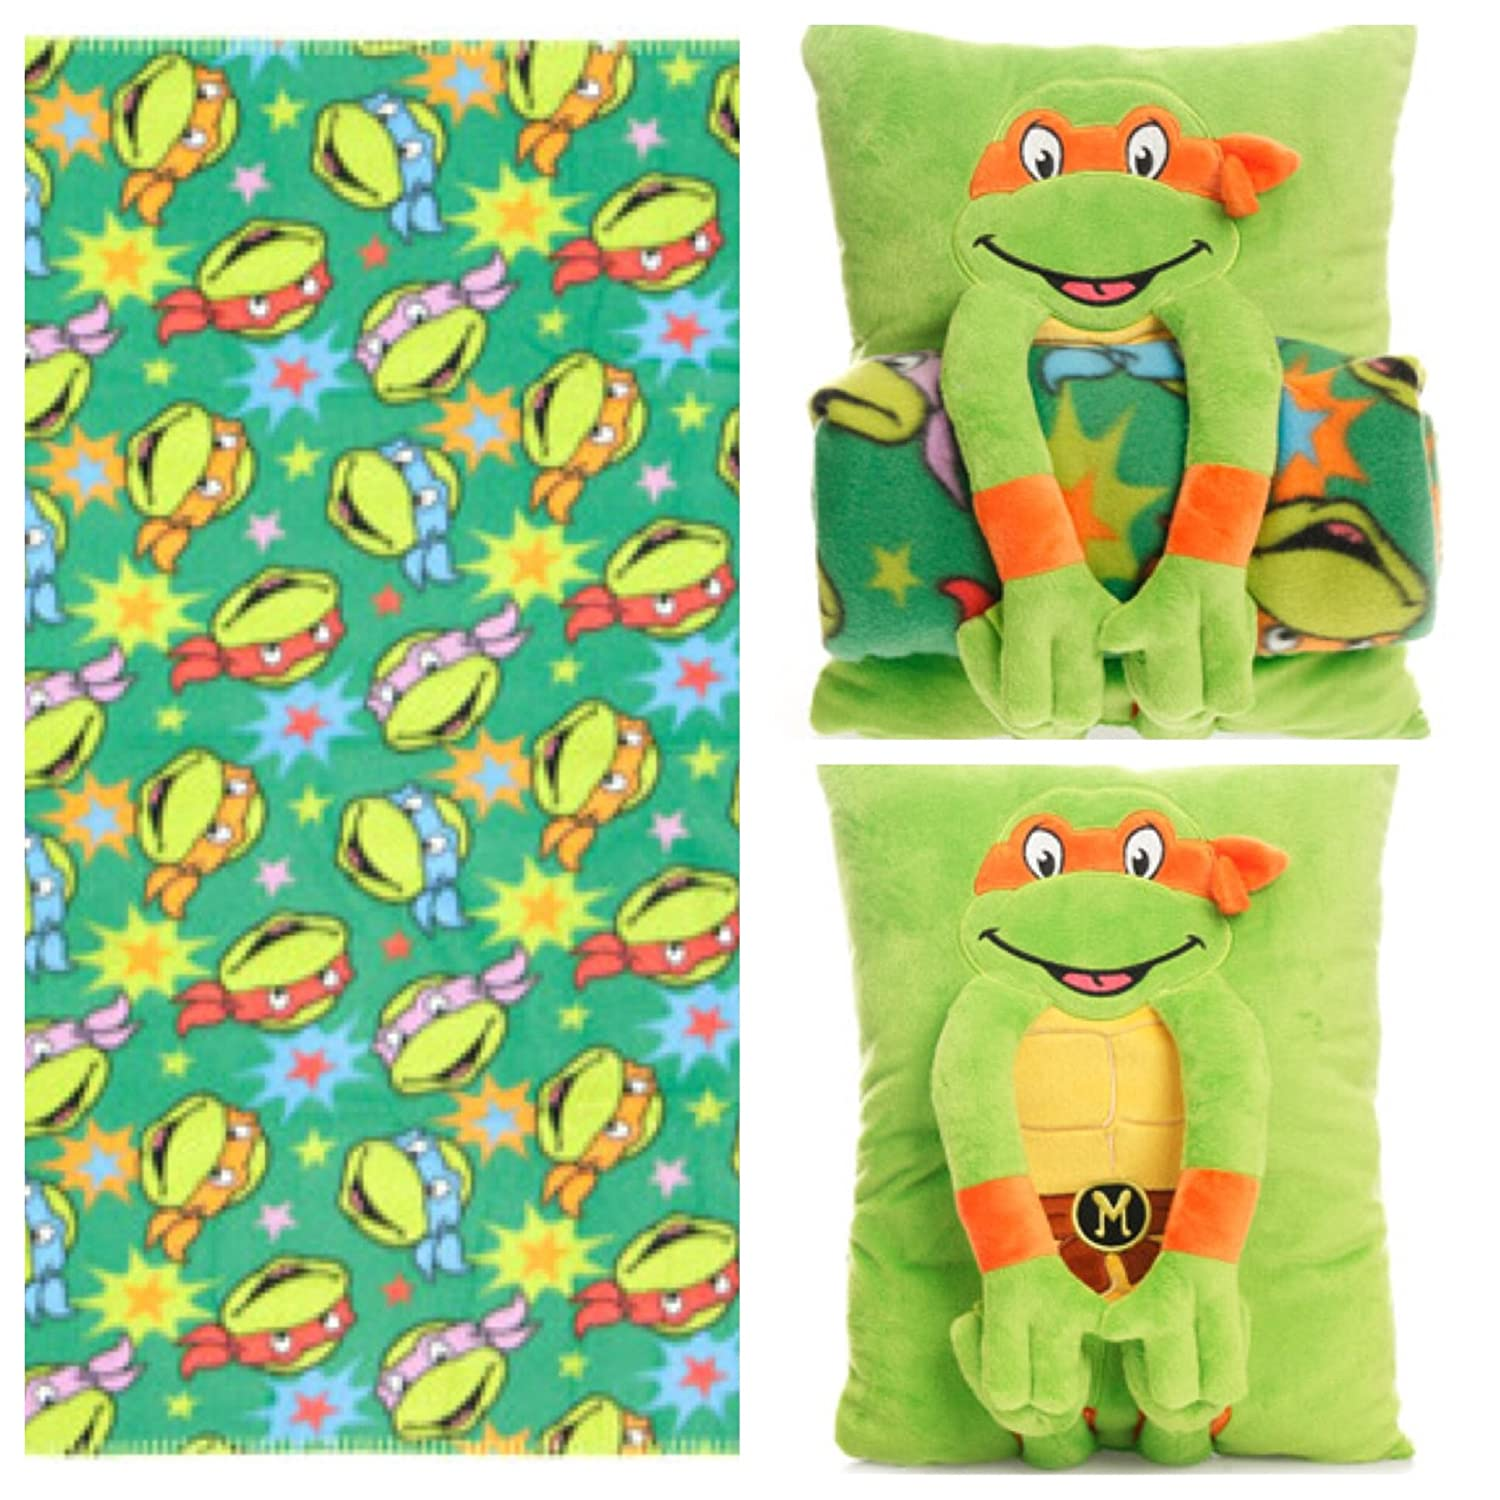 Nickelodeon Teenage Mutant Ninja Turtles Cuddle Time Snuggle Buddy Pillow / Blanket Set вибромассажер мини snuggle bug фиолетовый